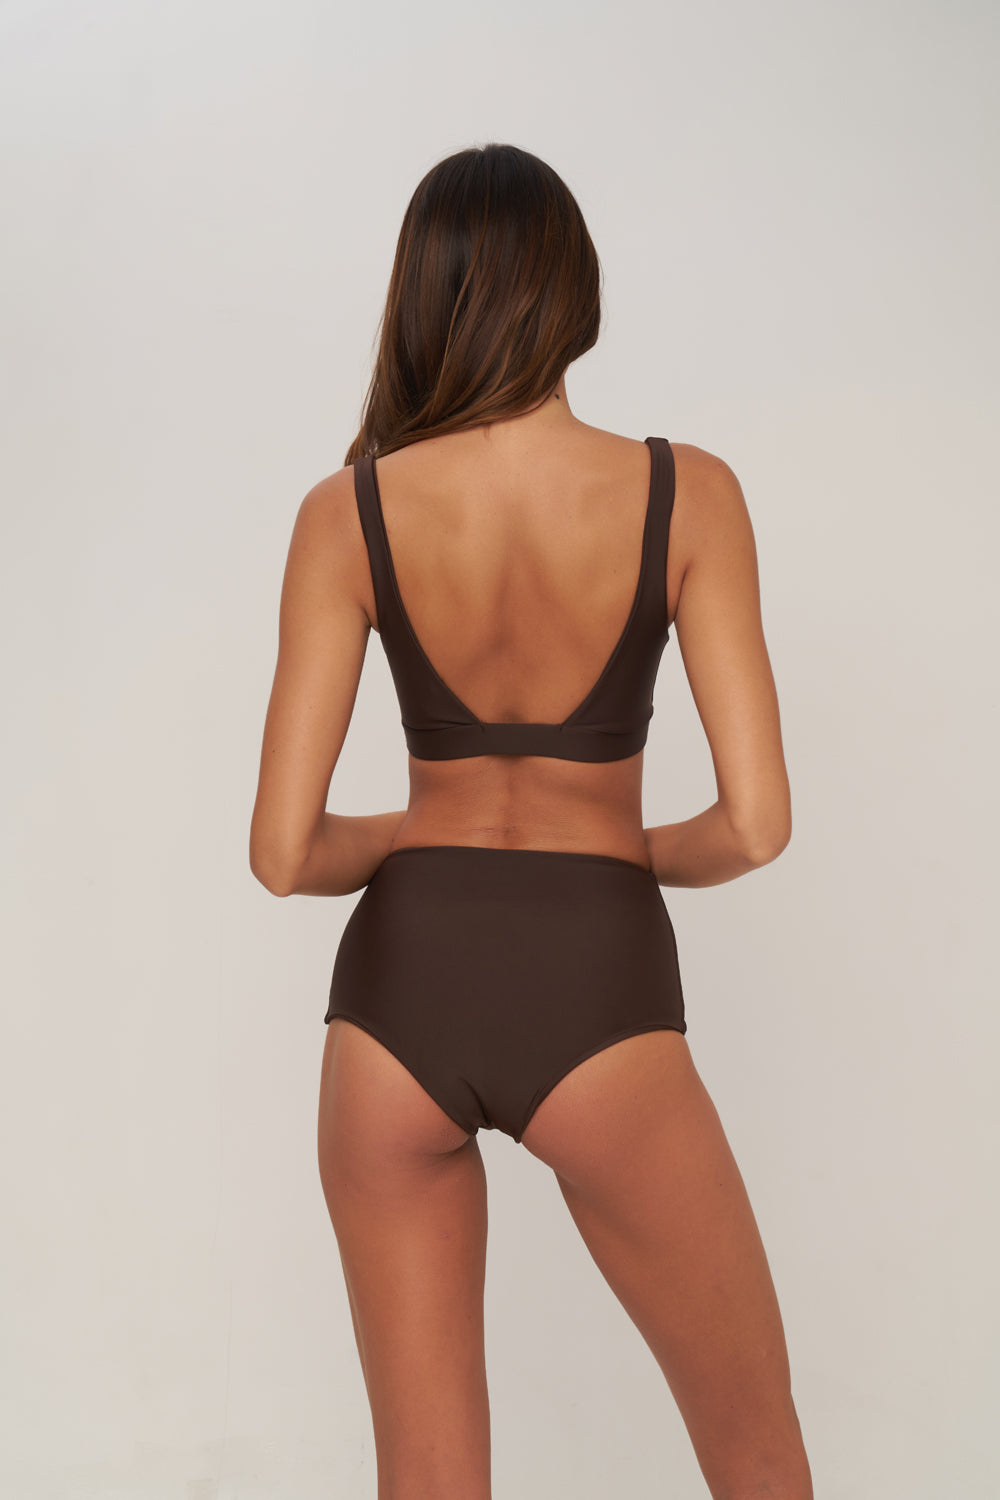 Cannes - High Waist Bikini Bottom in Chocolate